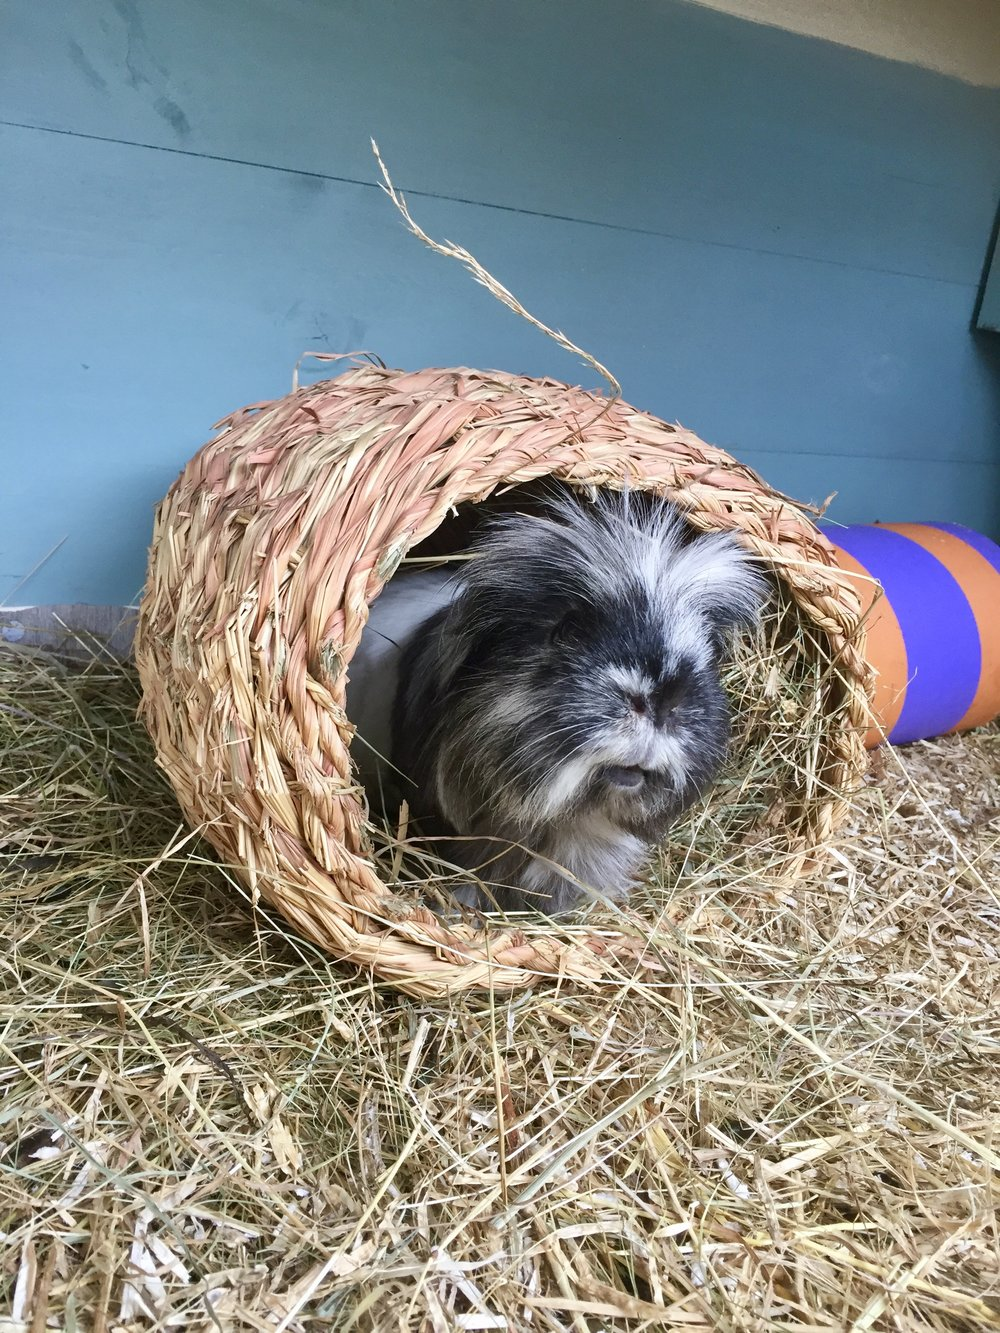 Guinea pig in a grassy nest, in one of our hutches